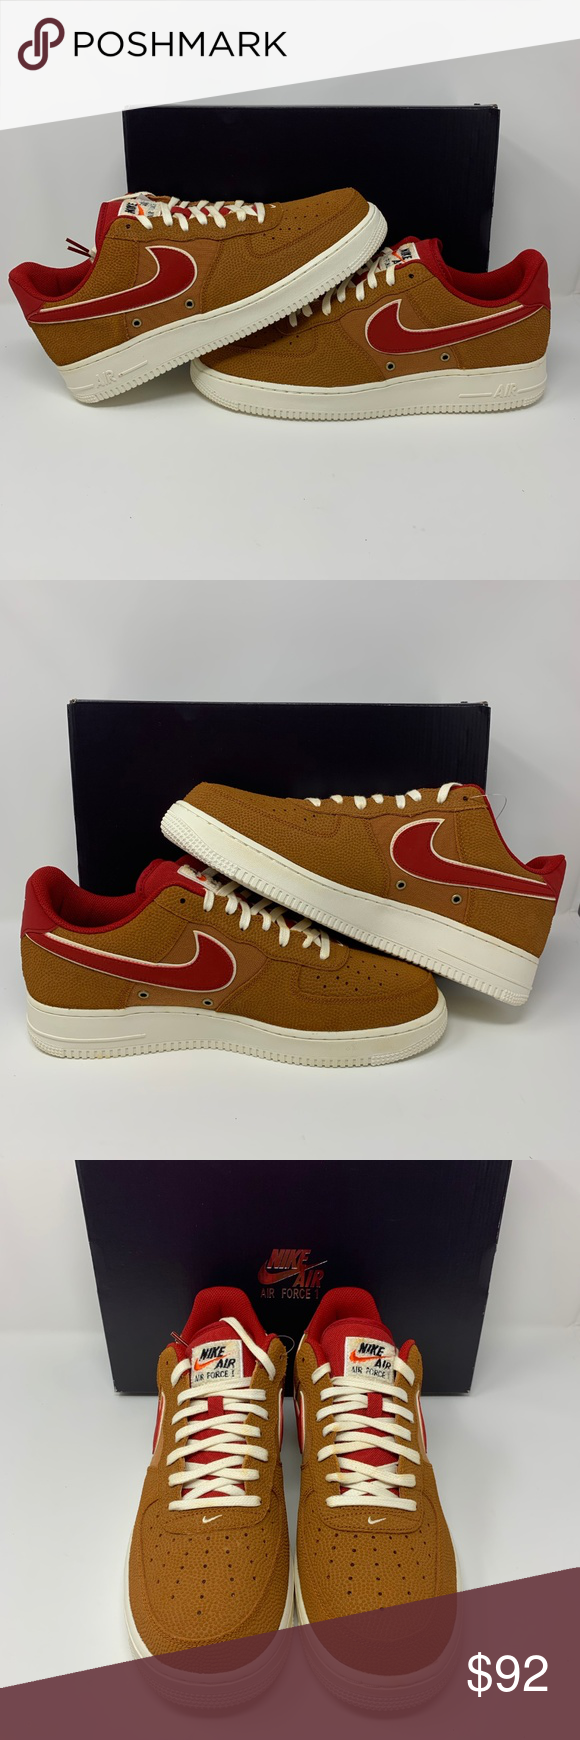 quality design 65f78 a7853 NIKE AIR FORCE 1 07 LV8 TAWNY BROWN NIKE AIR FORCE 1 07 LV8 TAWNY BROWN